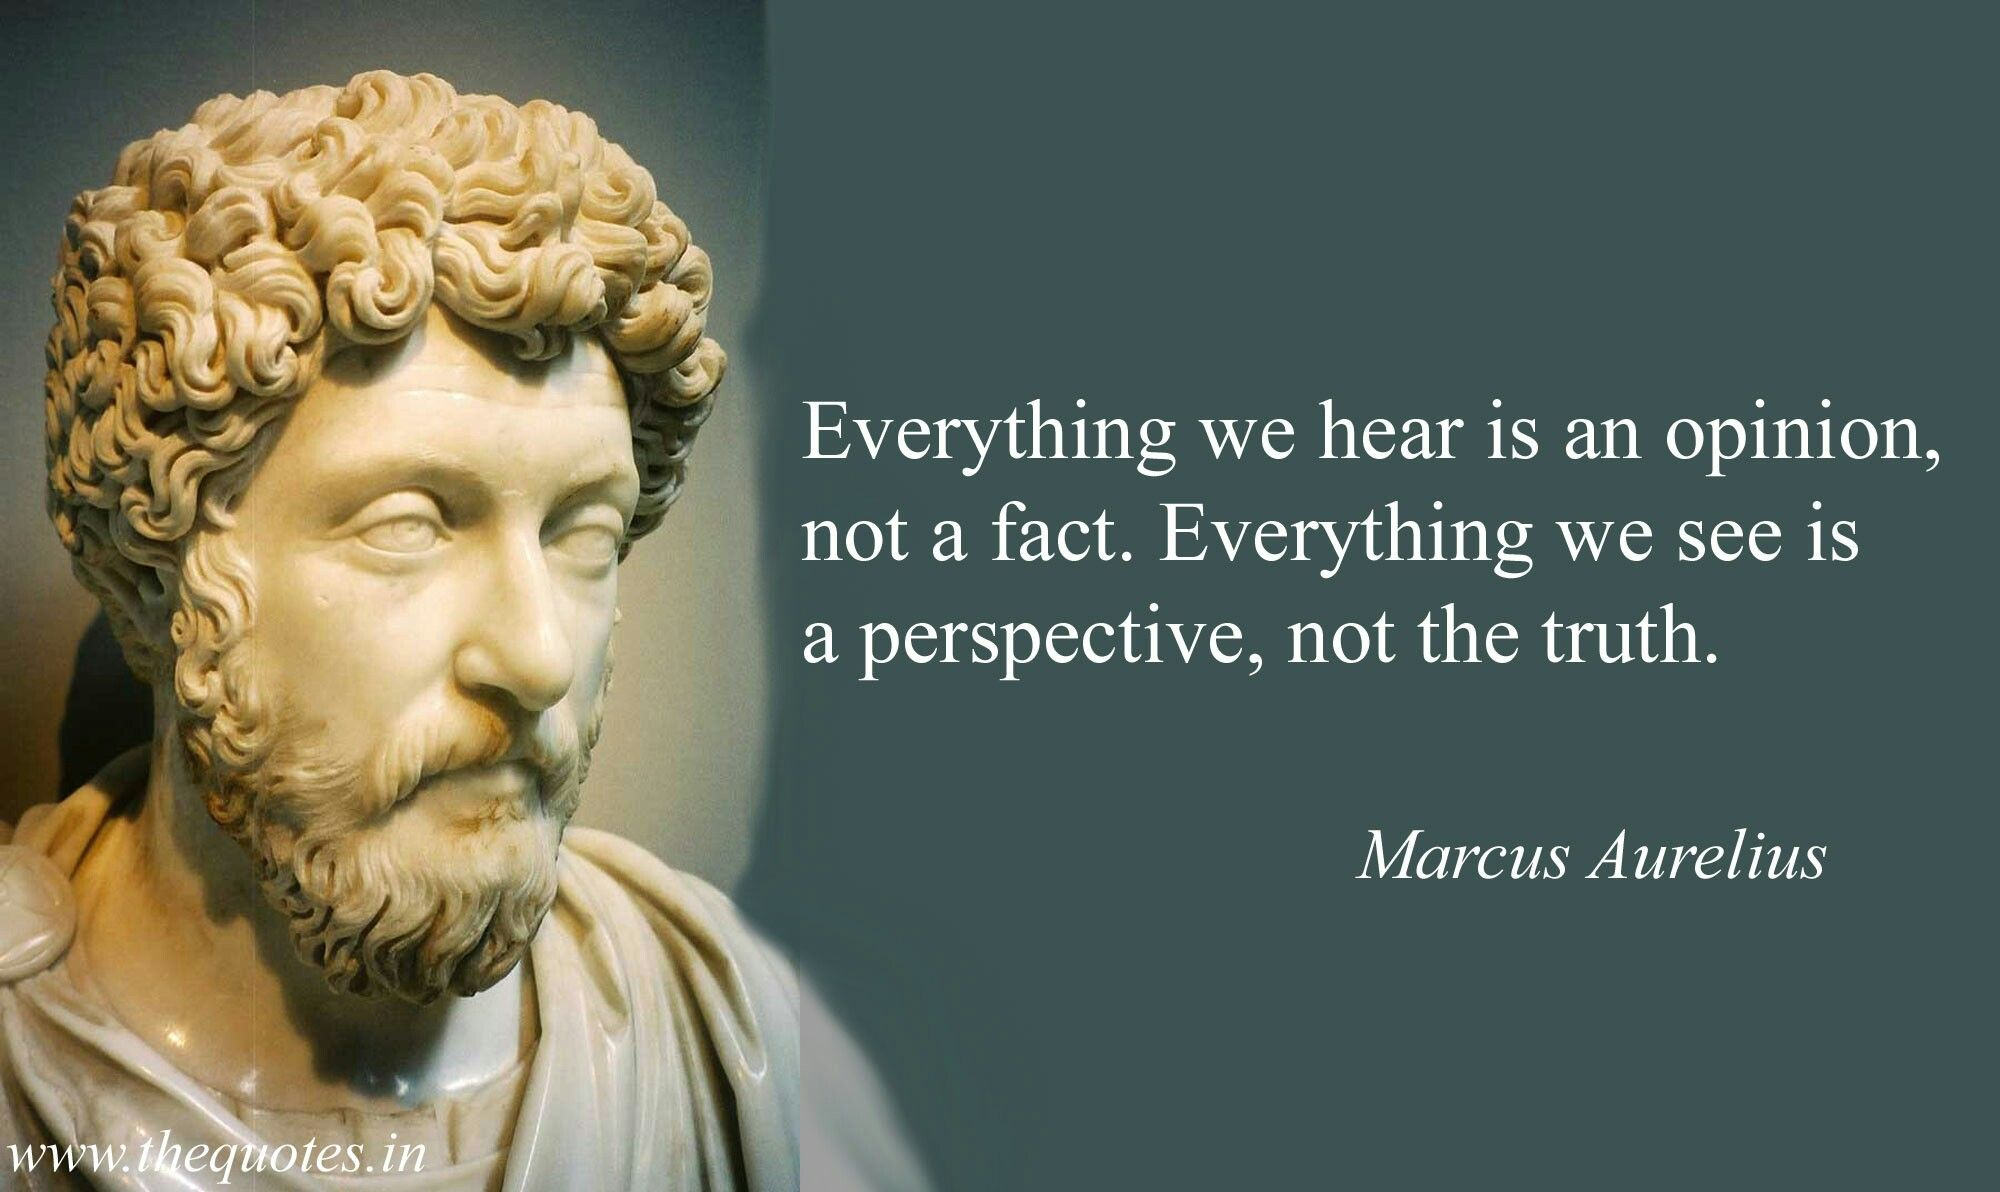 Marcus Aurelius Quotes Mesmerizing Marcus Aurelius  Sayings And Quotes  Pinterest  Quotation